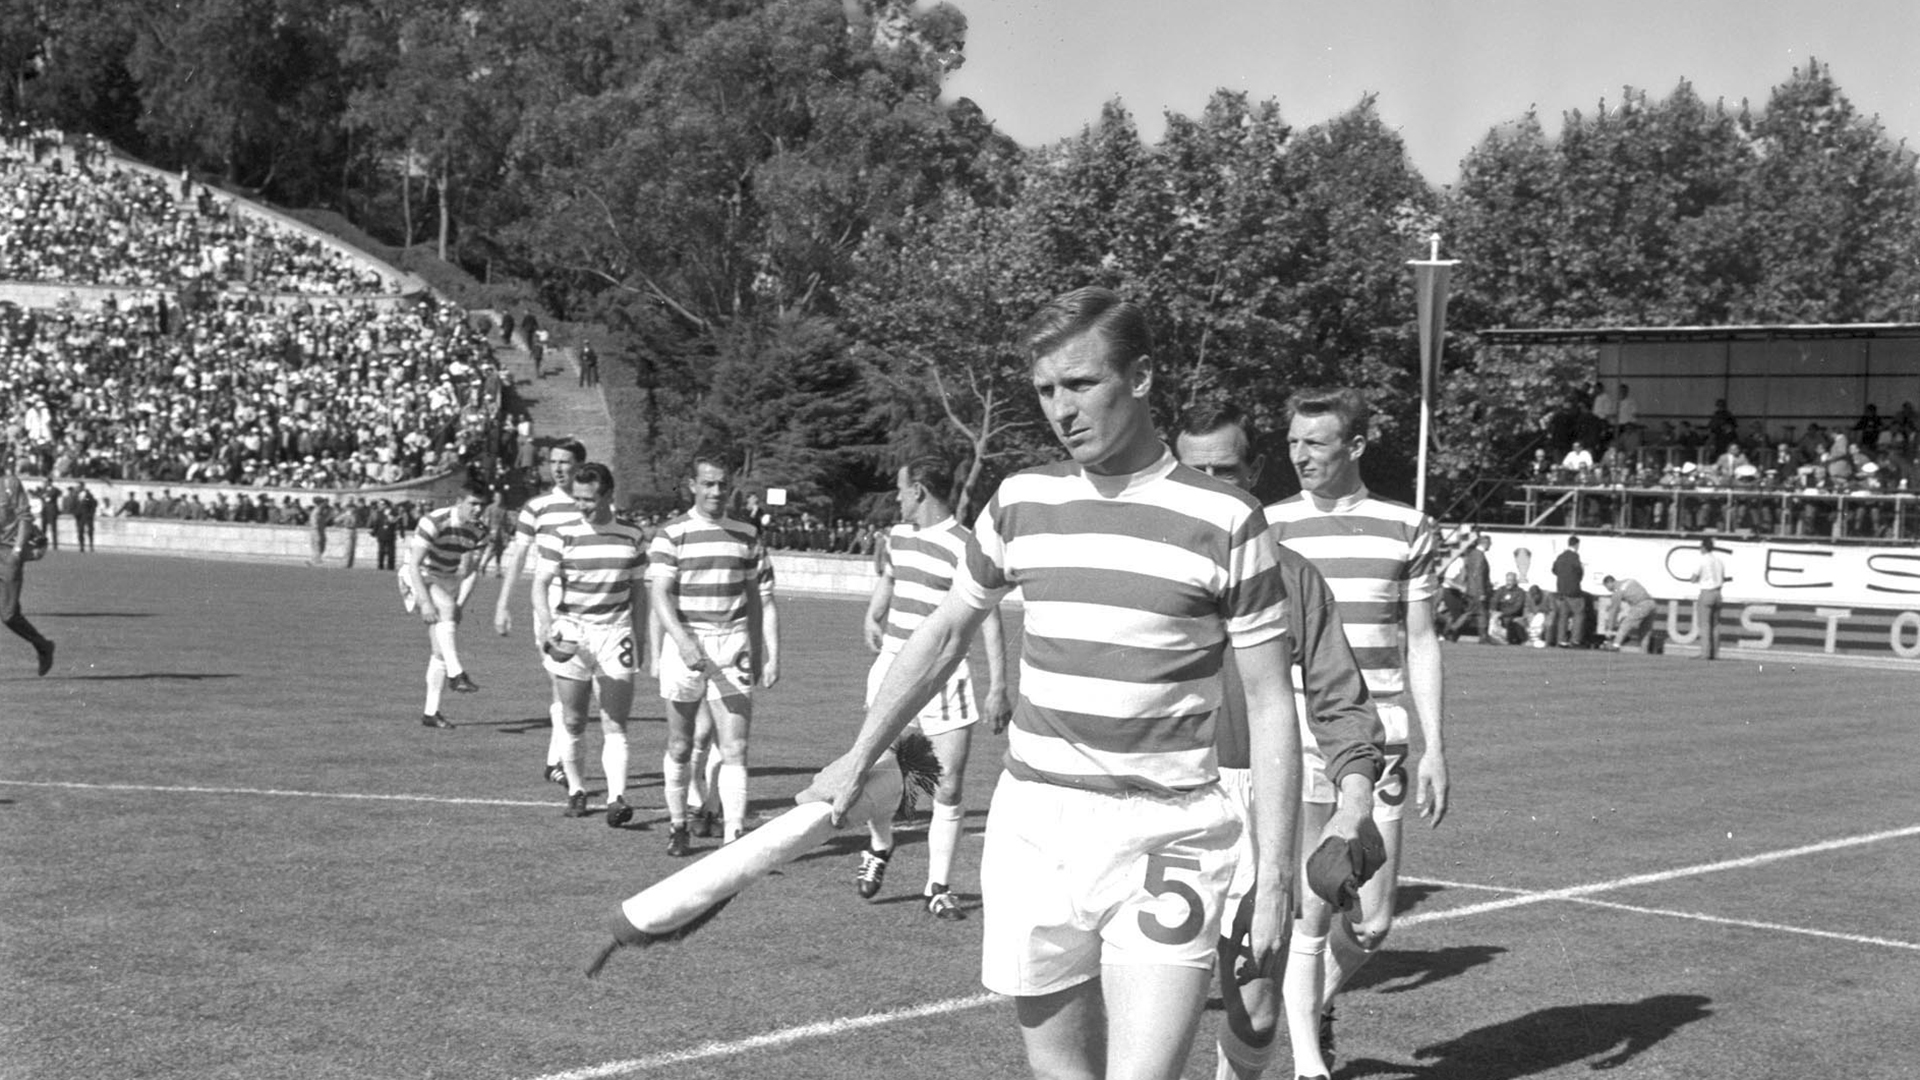 Fallece Billy McNeill, galardonado con el One Club Man Award 2019